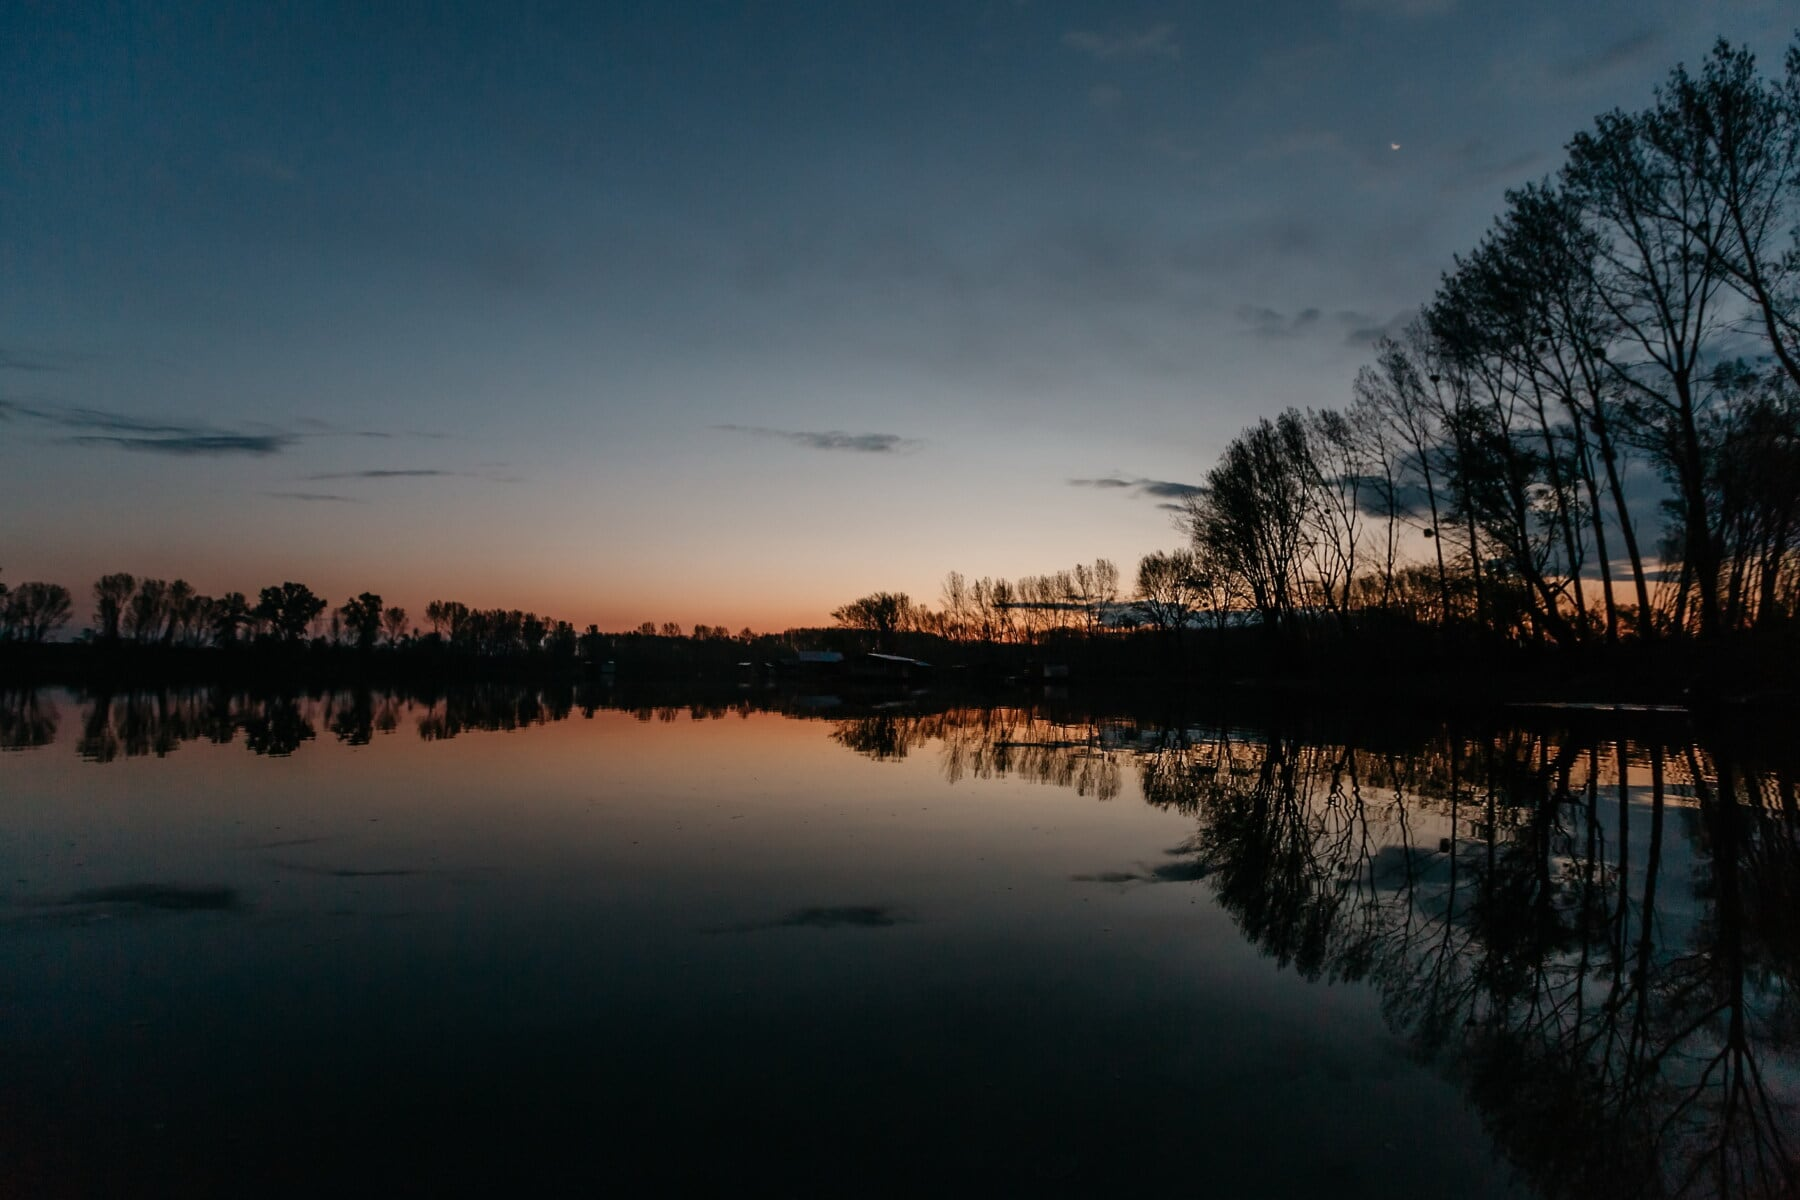 sunset, landscape, atmosphere, dawn, lake, water, reflection, tree, evening, river